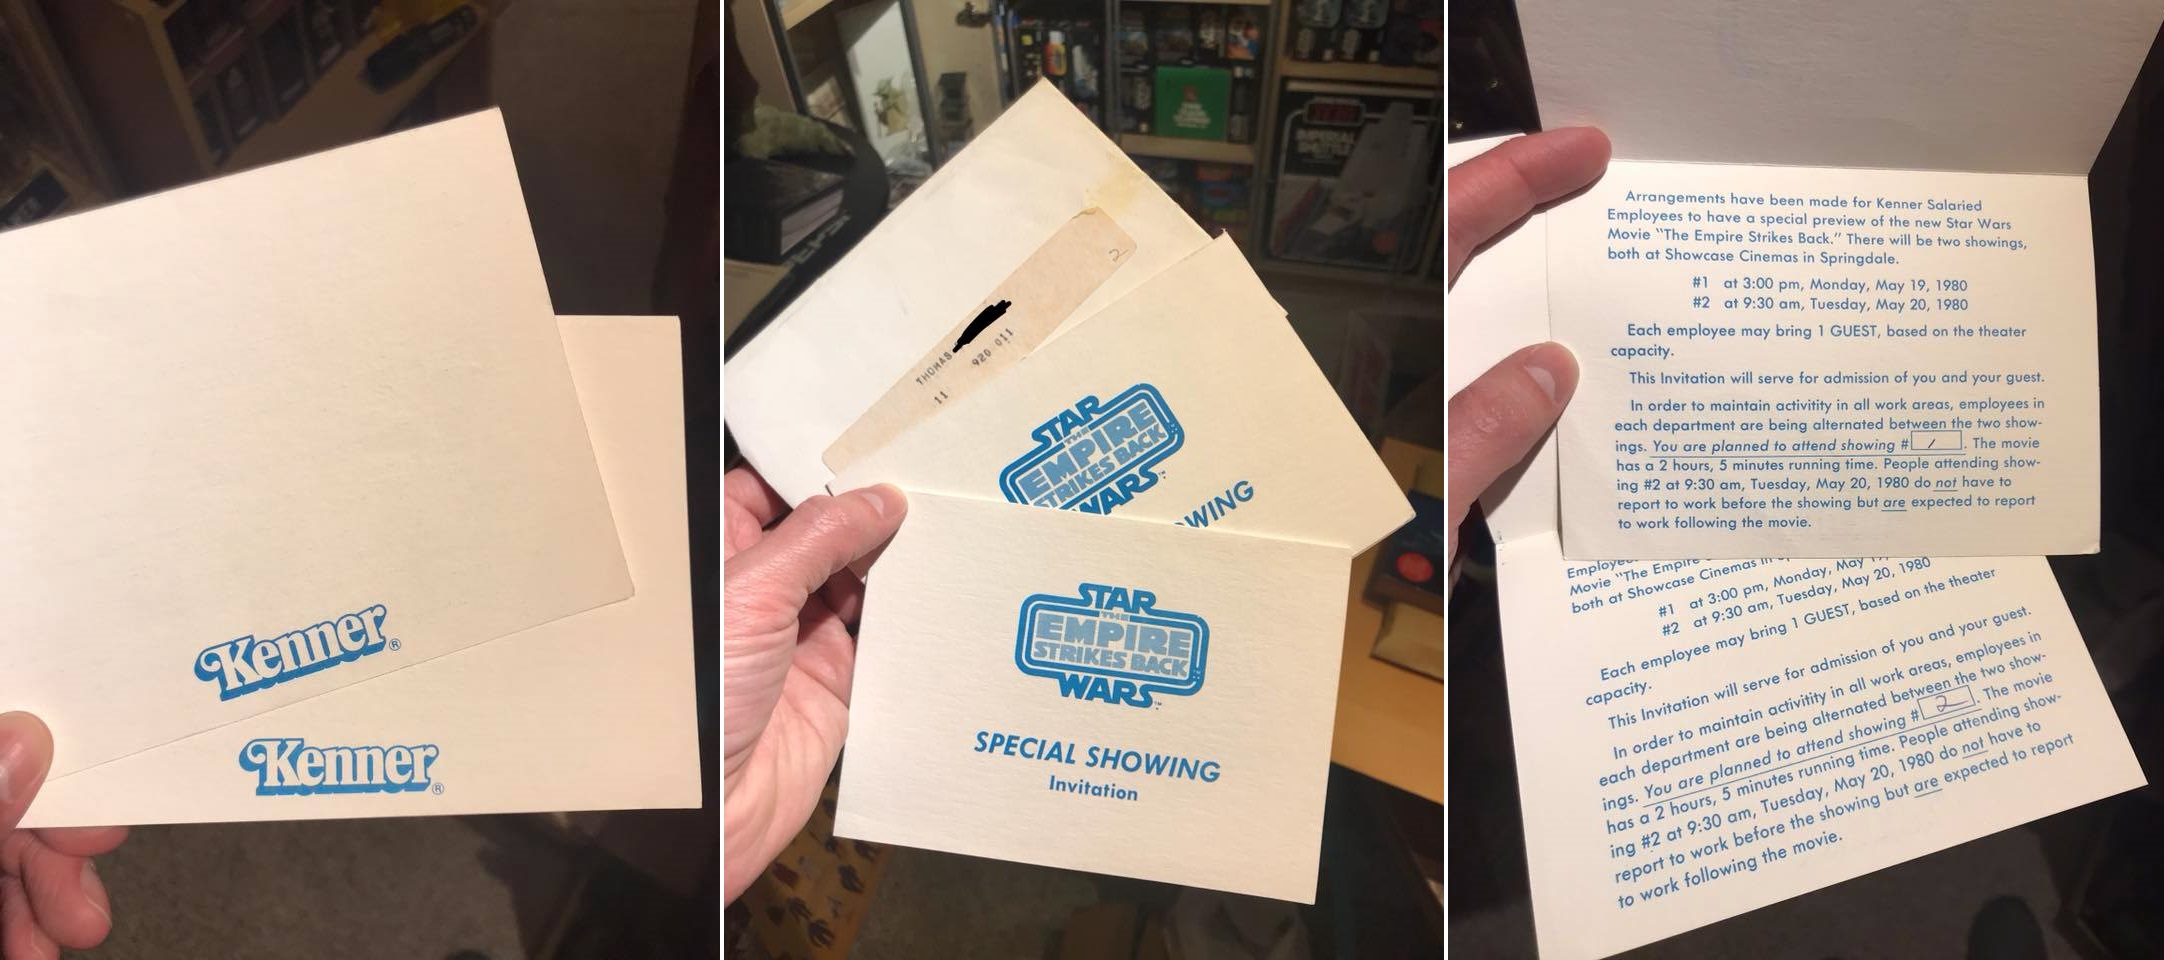 The Empire Strikes Back  Kenner employee special preview invitations - Courtesy of Sean Lehmkuhl